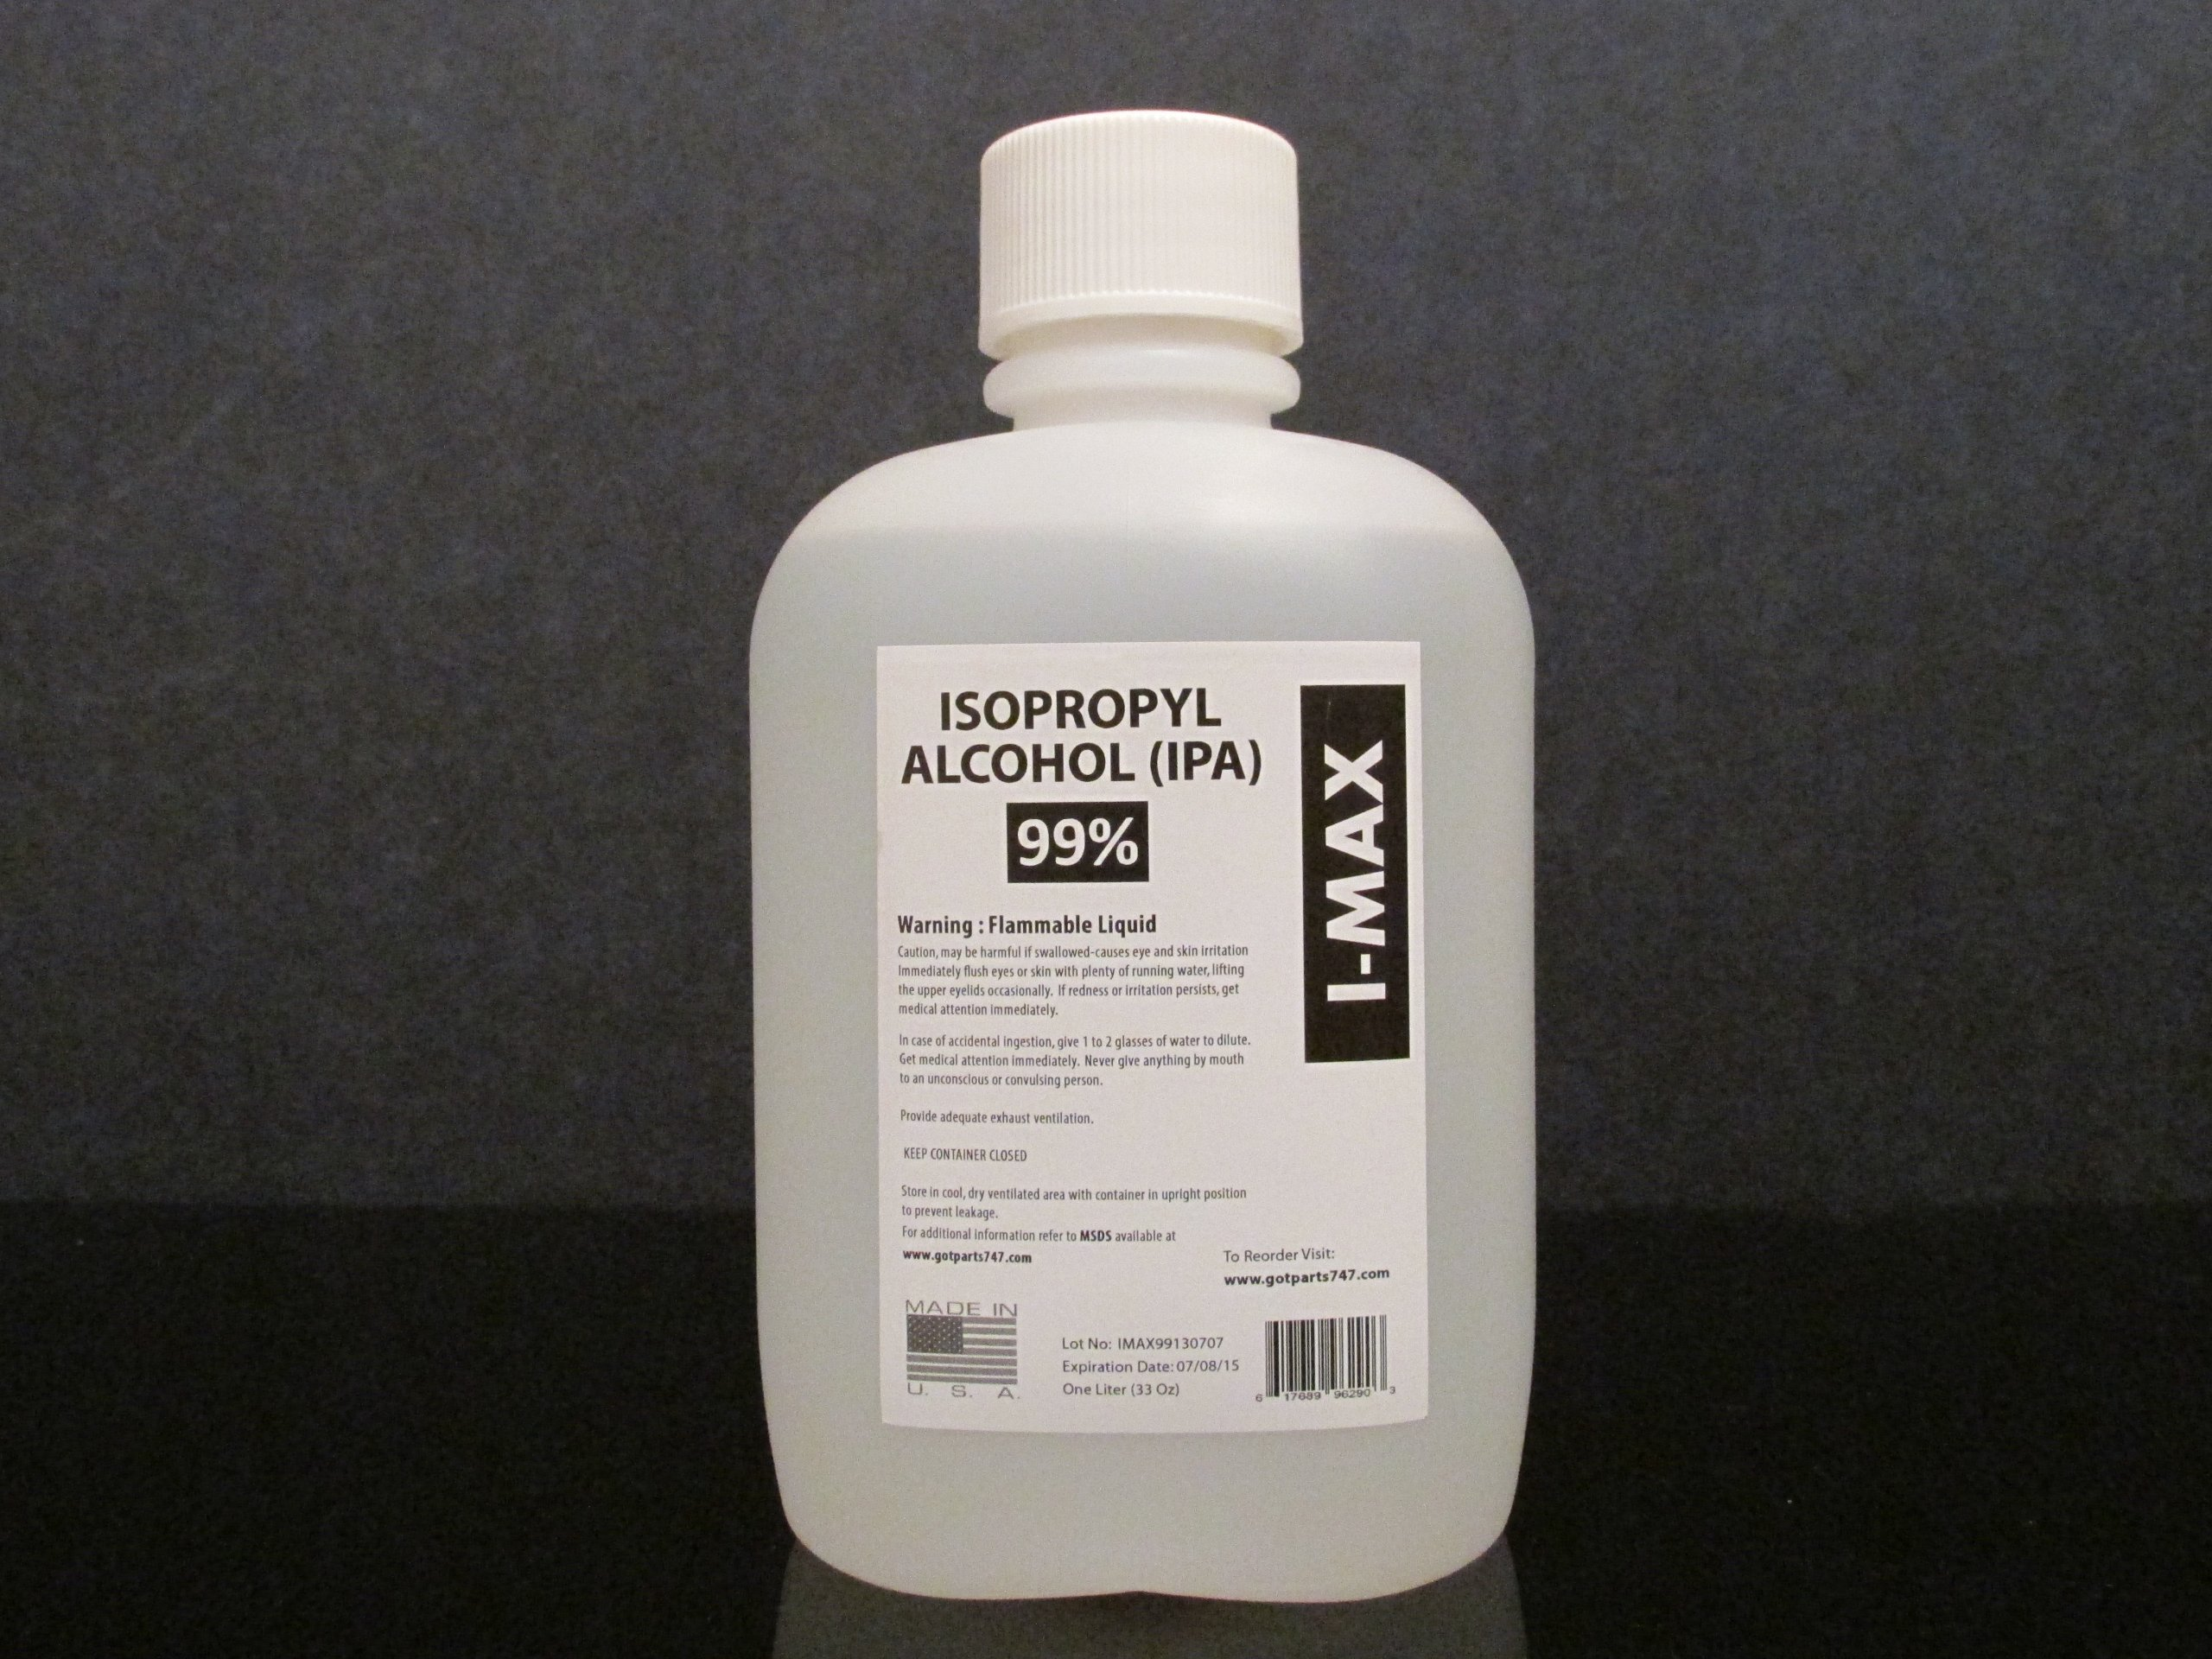 Isopropyl Alcohol > 99.5% - 1 Gallon (packaged & shipped in 4 X 1 liter bottles) by Imax (Image #1)